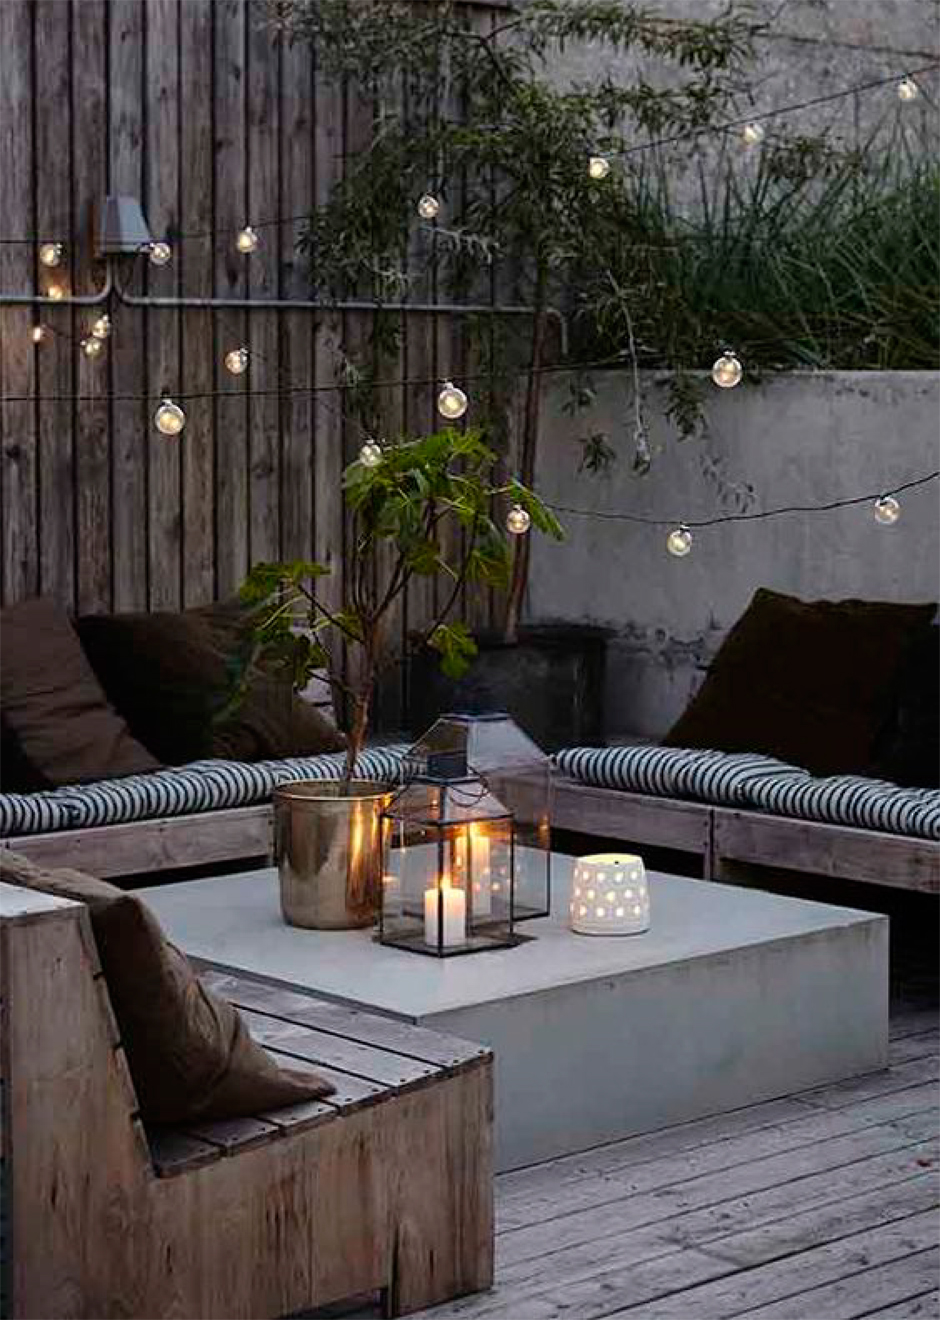 We're sharing 5 ways to make your outdoor space ready for entertaining | Akin Design Studio Blog | Modern Outdoor Seating Area